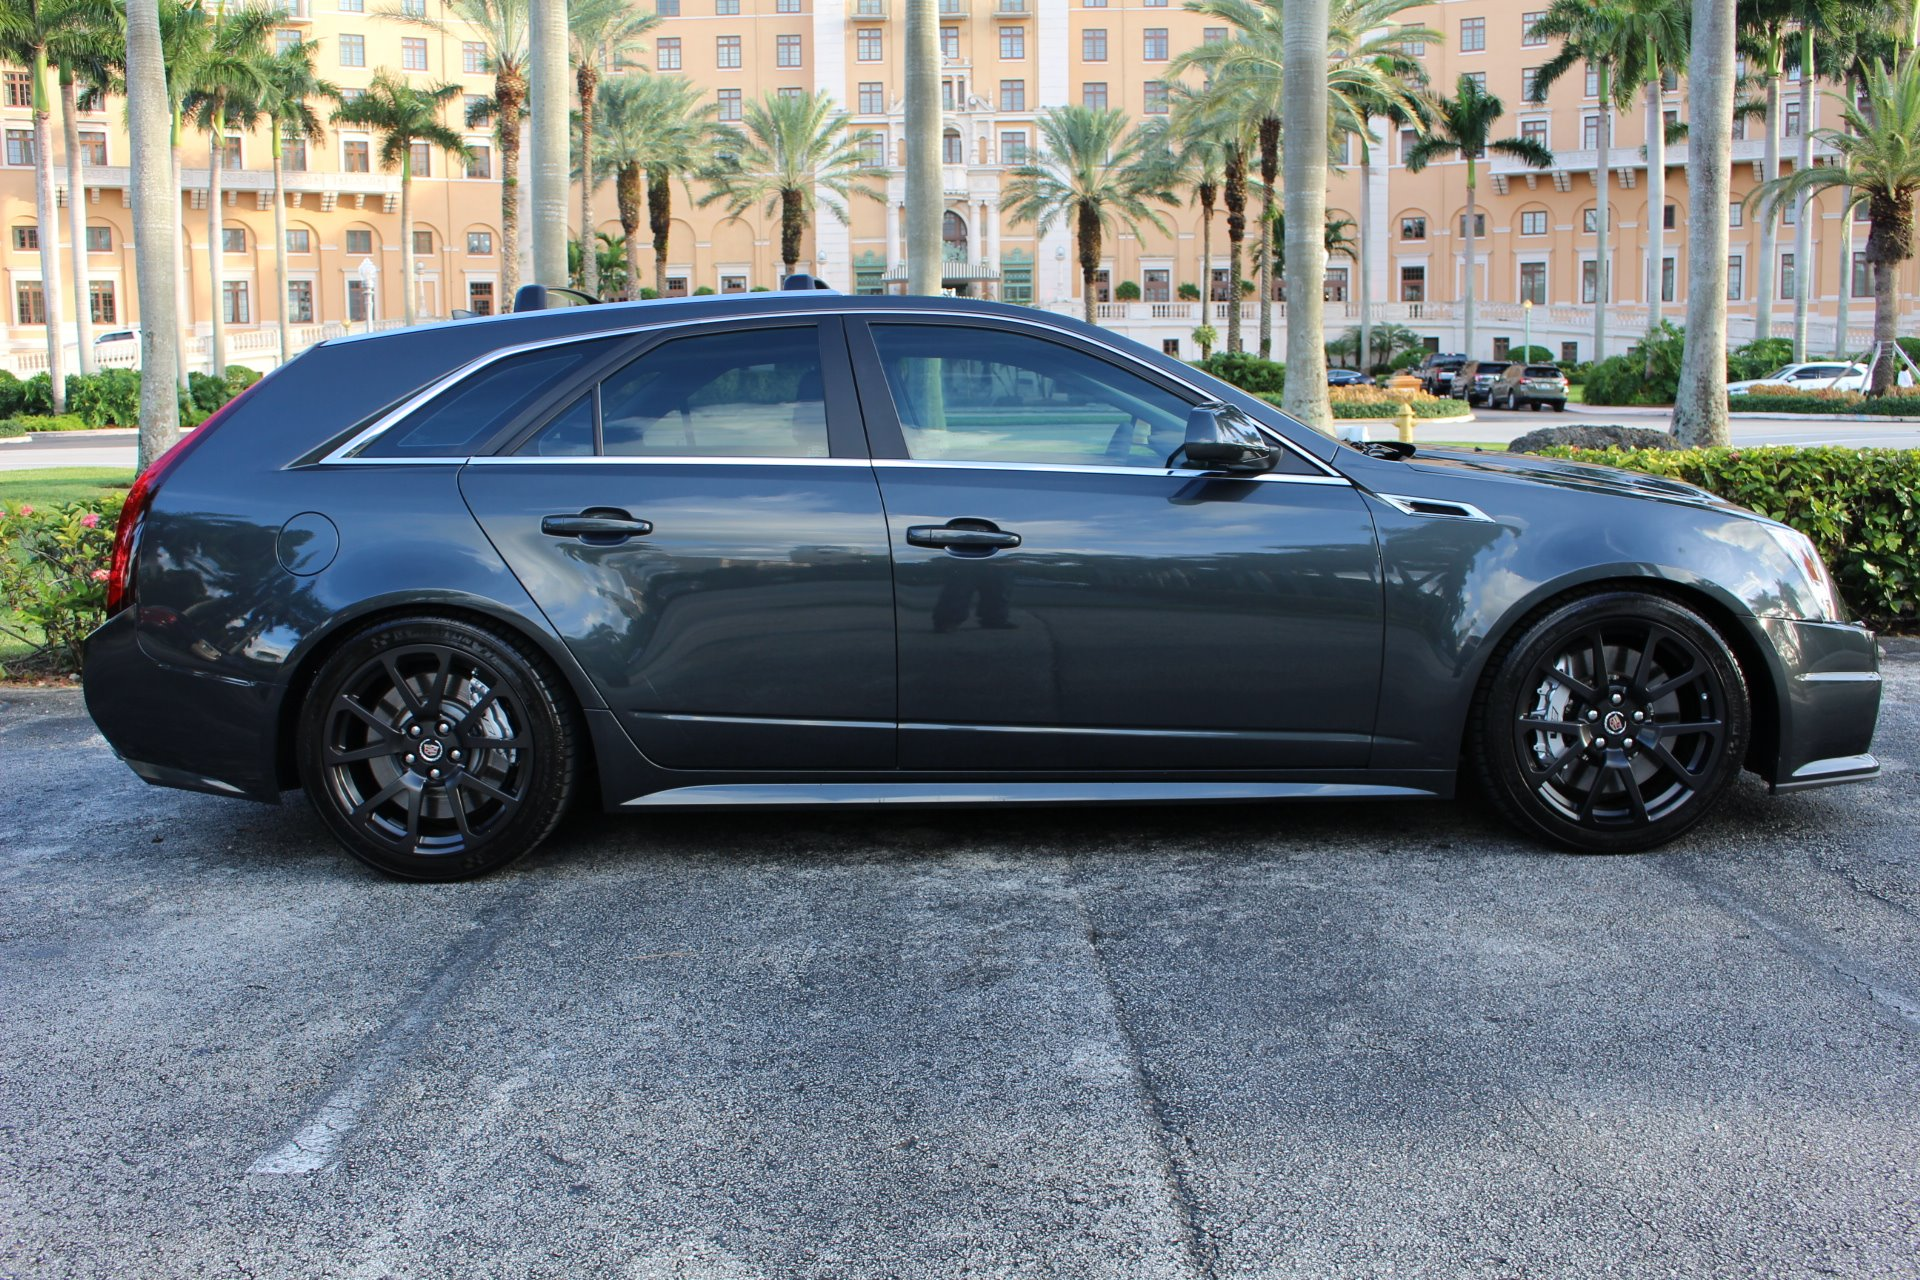 Used 2014 Cadillac CTS-V for sale Sold at The Gables Sports Cars in Miami FL 33146 2